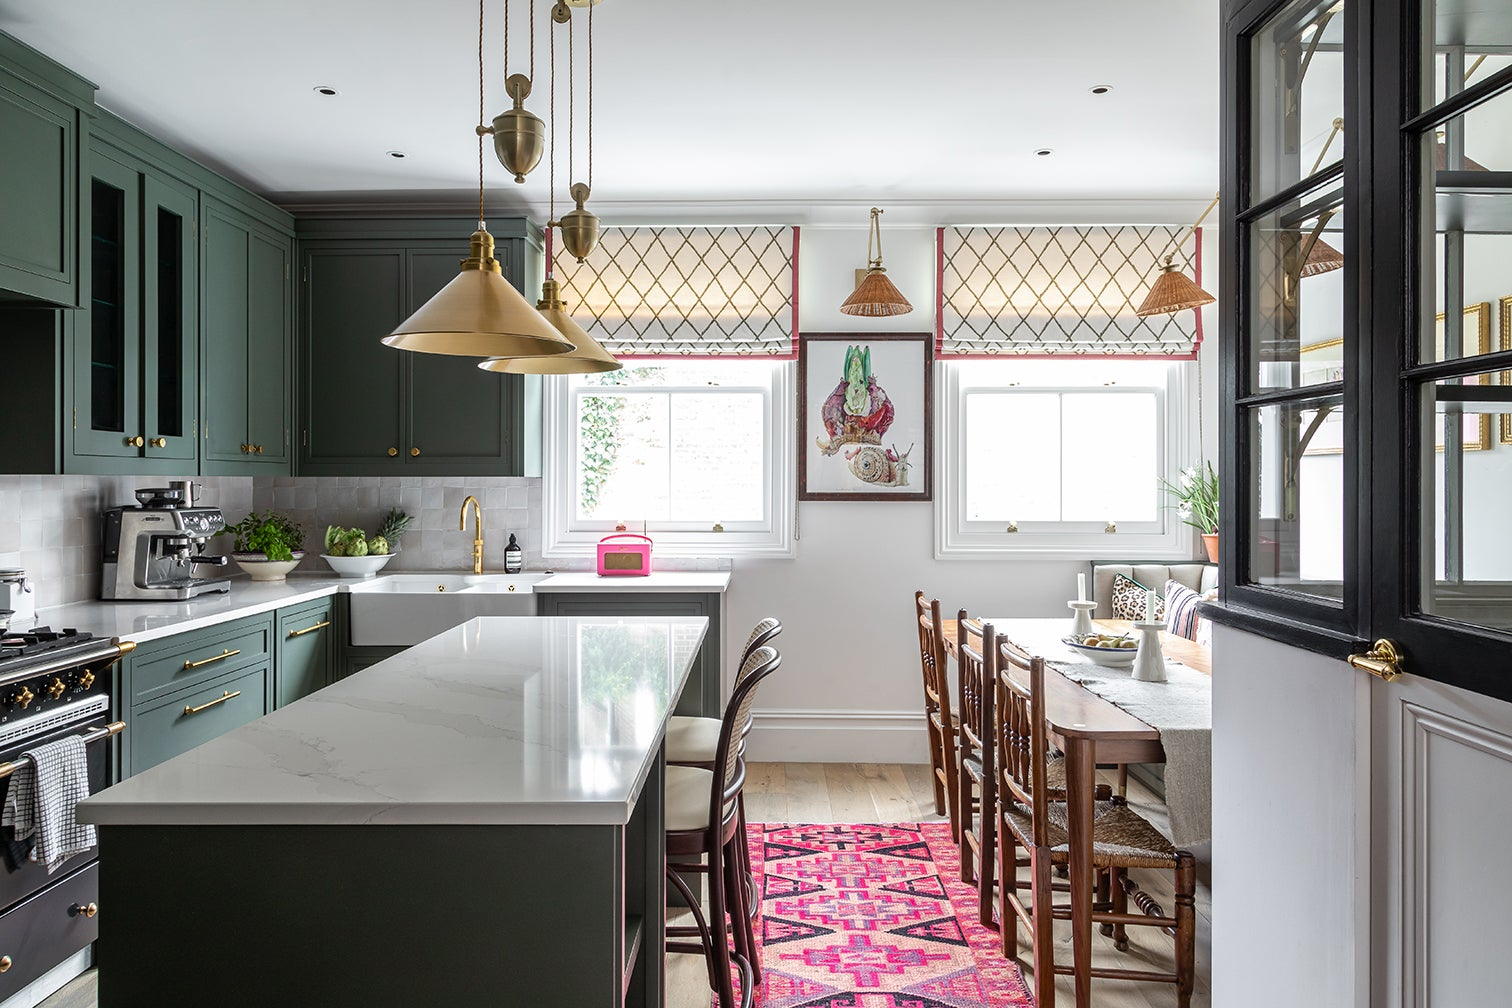 green kitchen with banquette